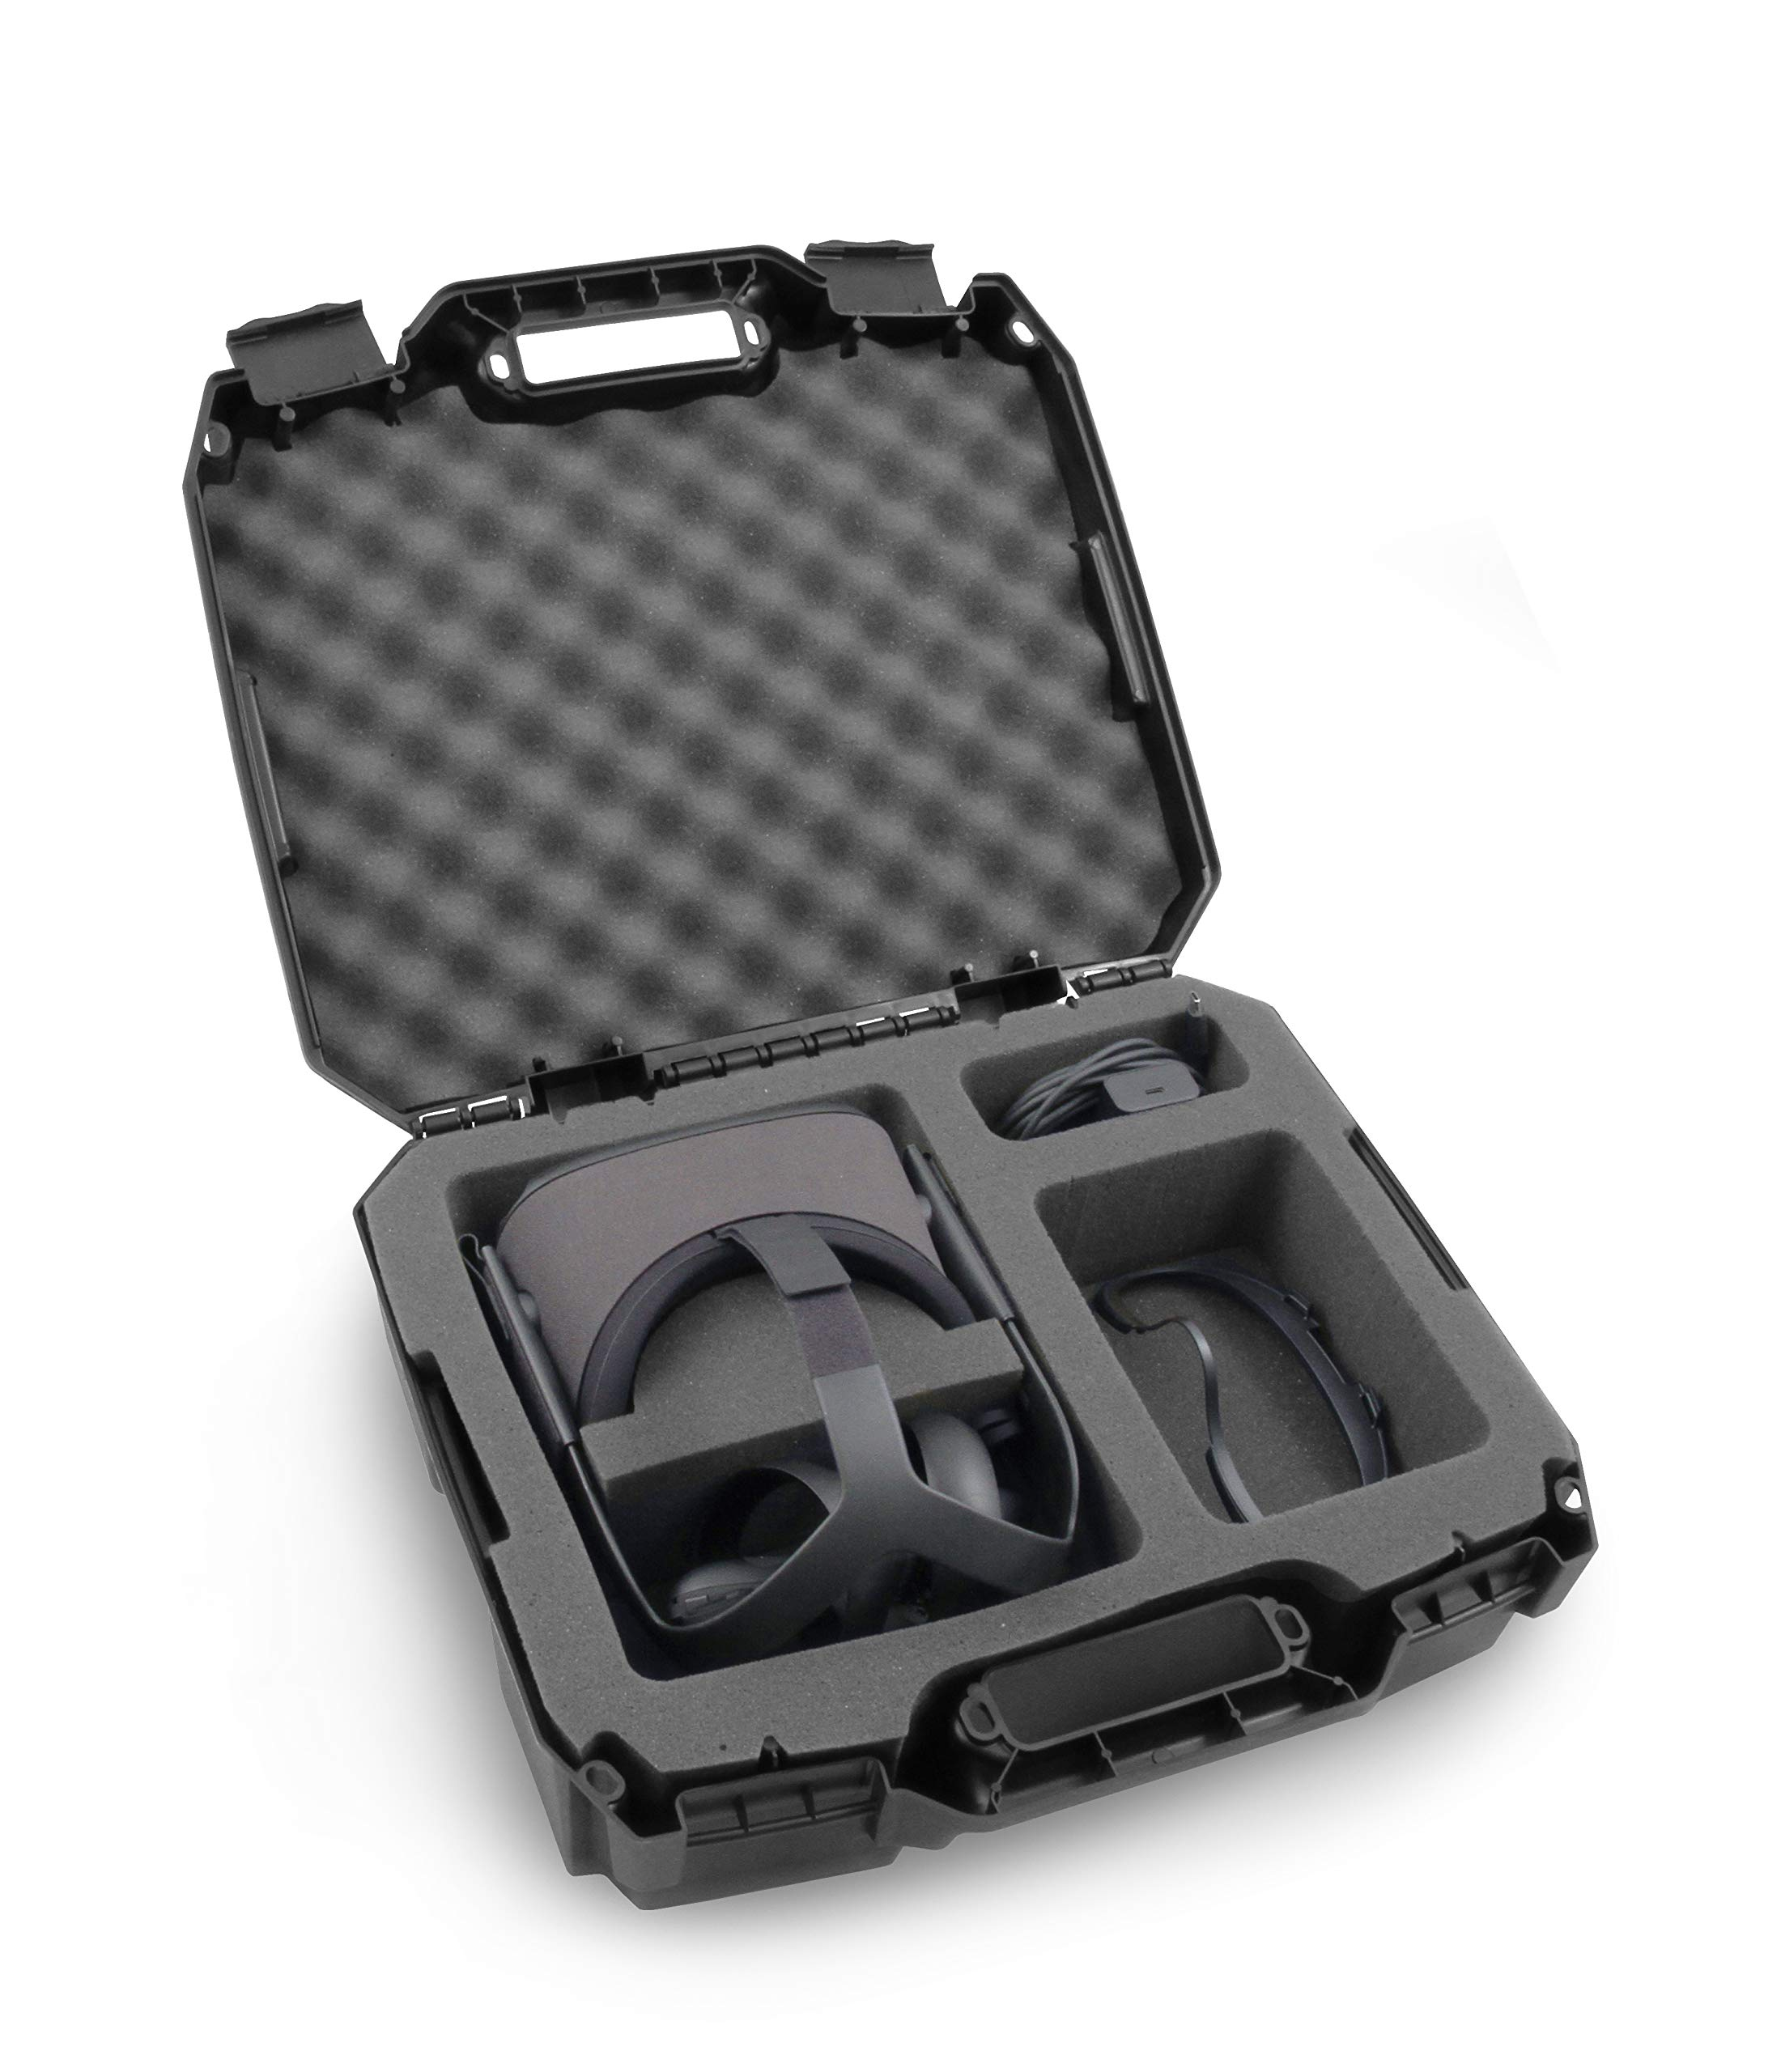 CASEMATIX Hard Shell Travel Case Compatible with Oculus Quest VR Headset 128GB 64 GB and Accessories with Custom Compartments